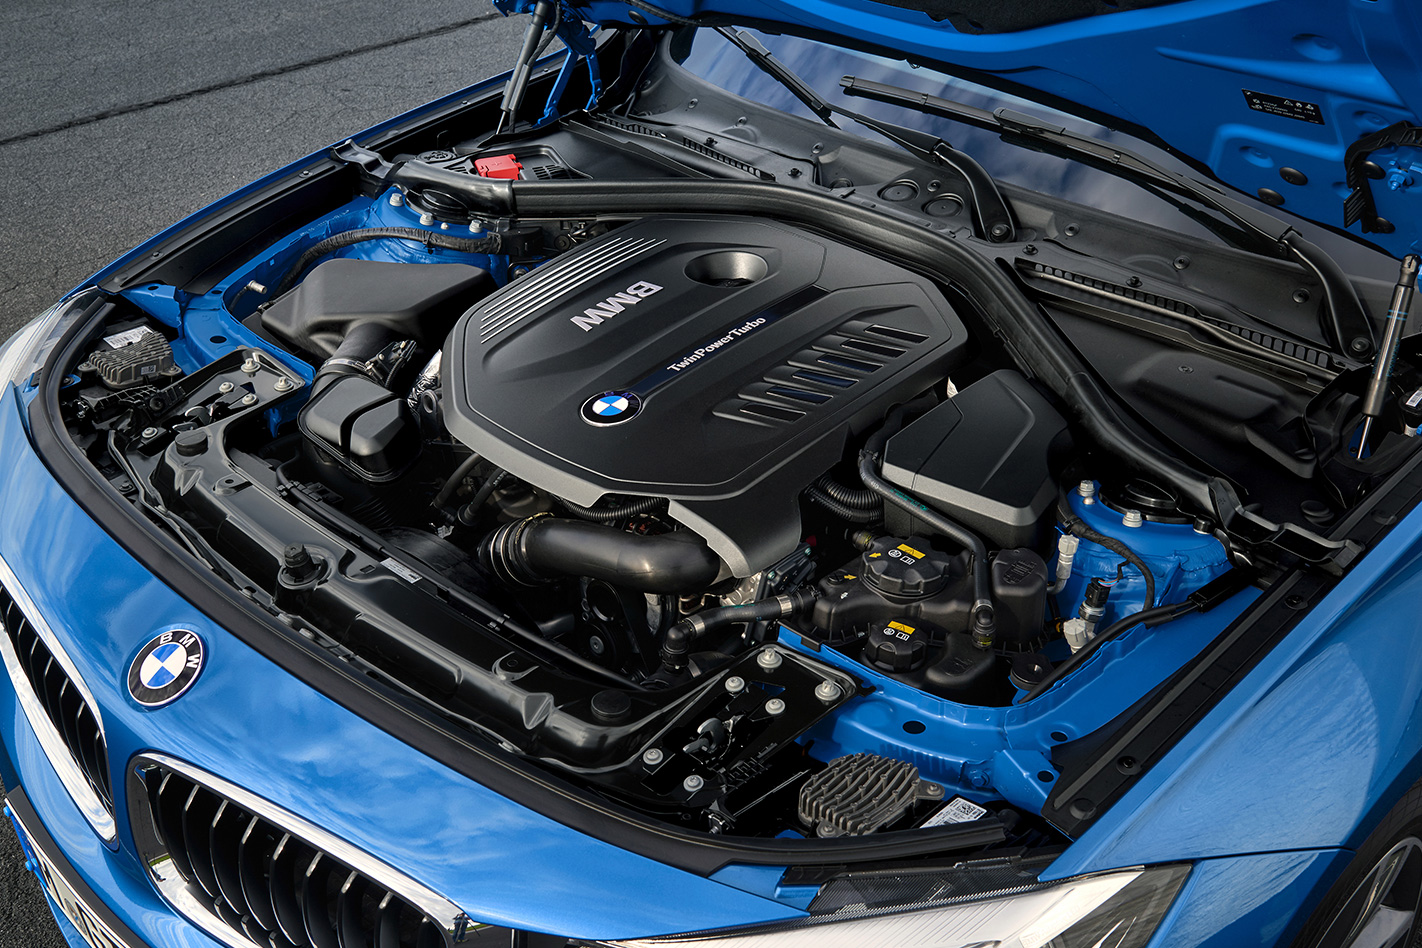 BMW M-Power Twin turbo engine